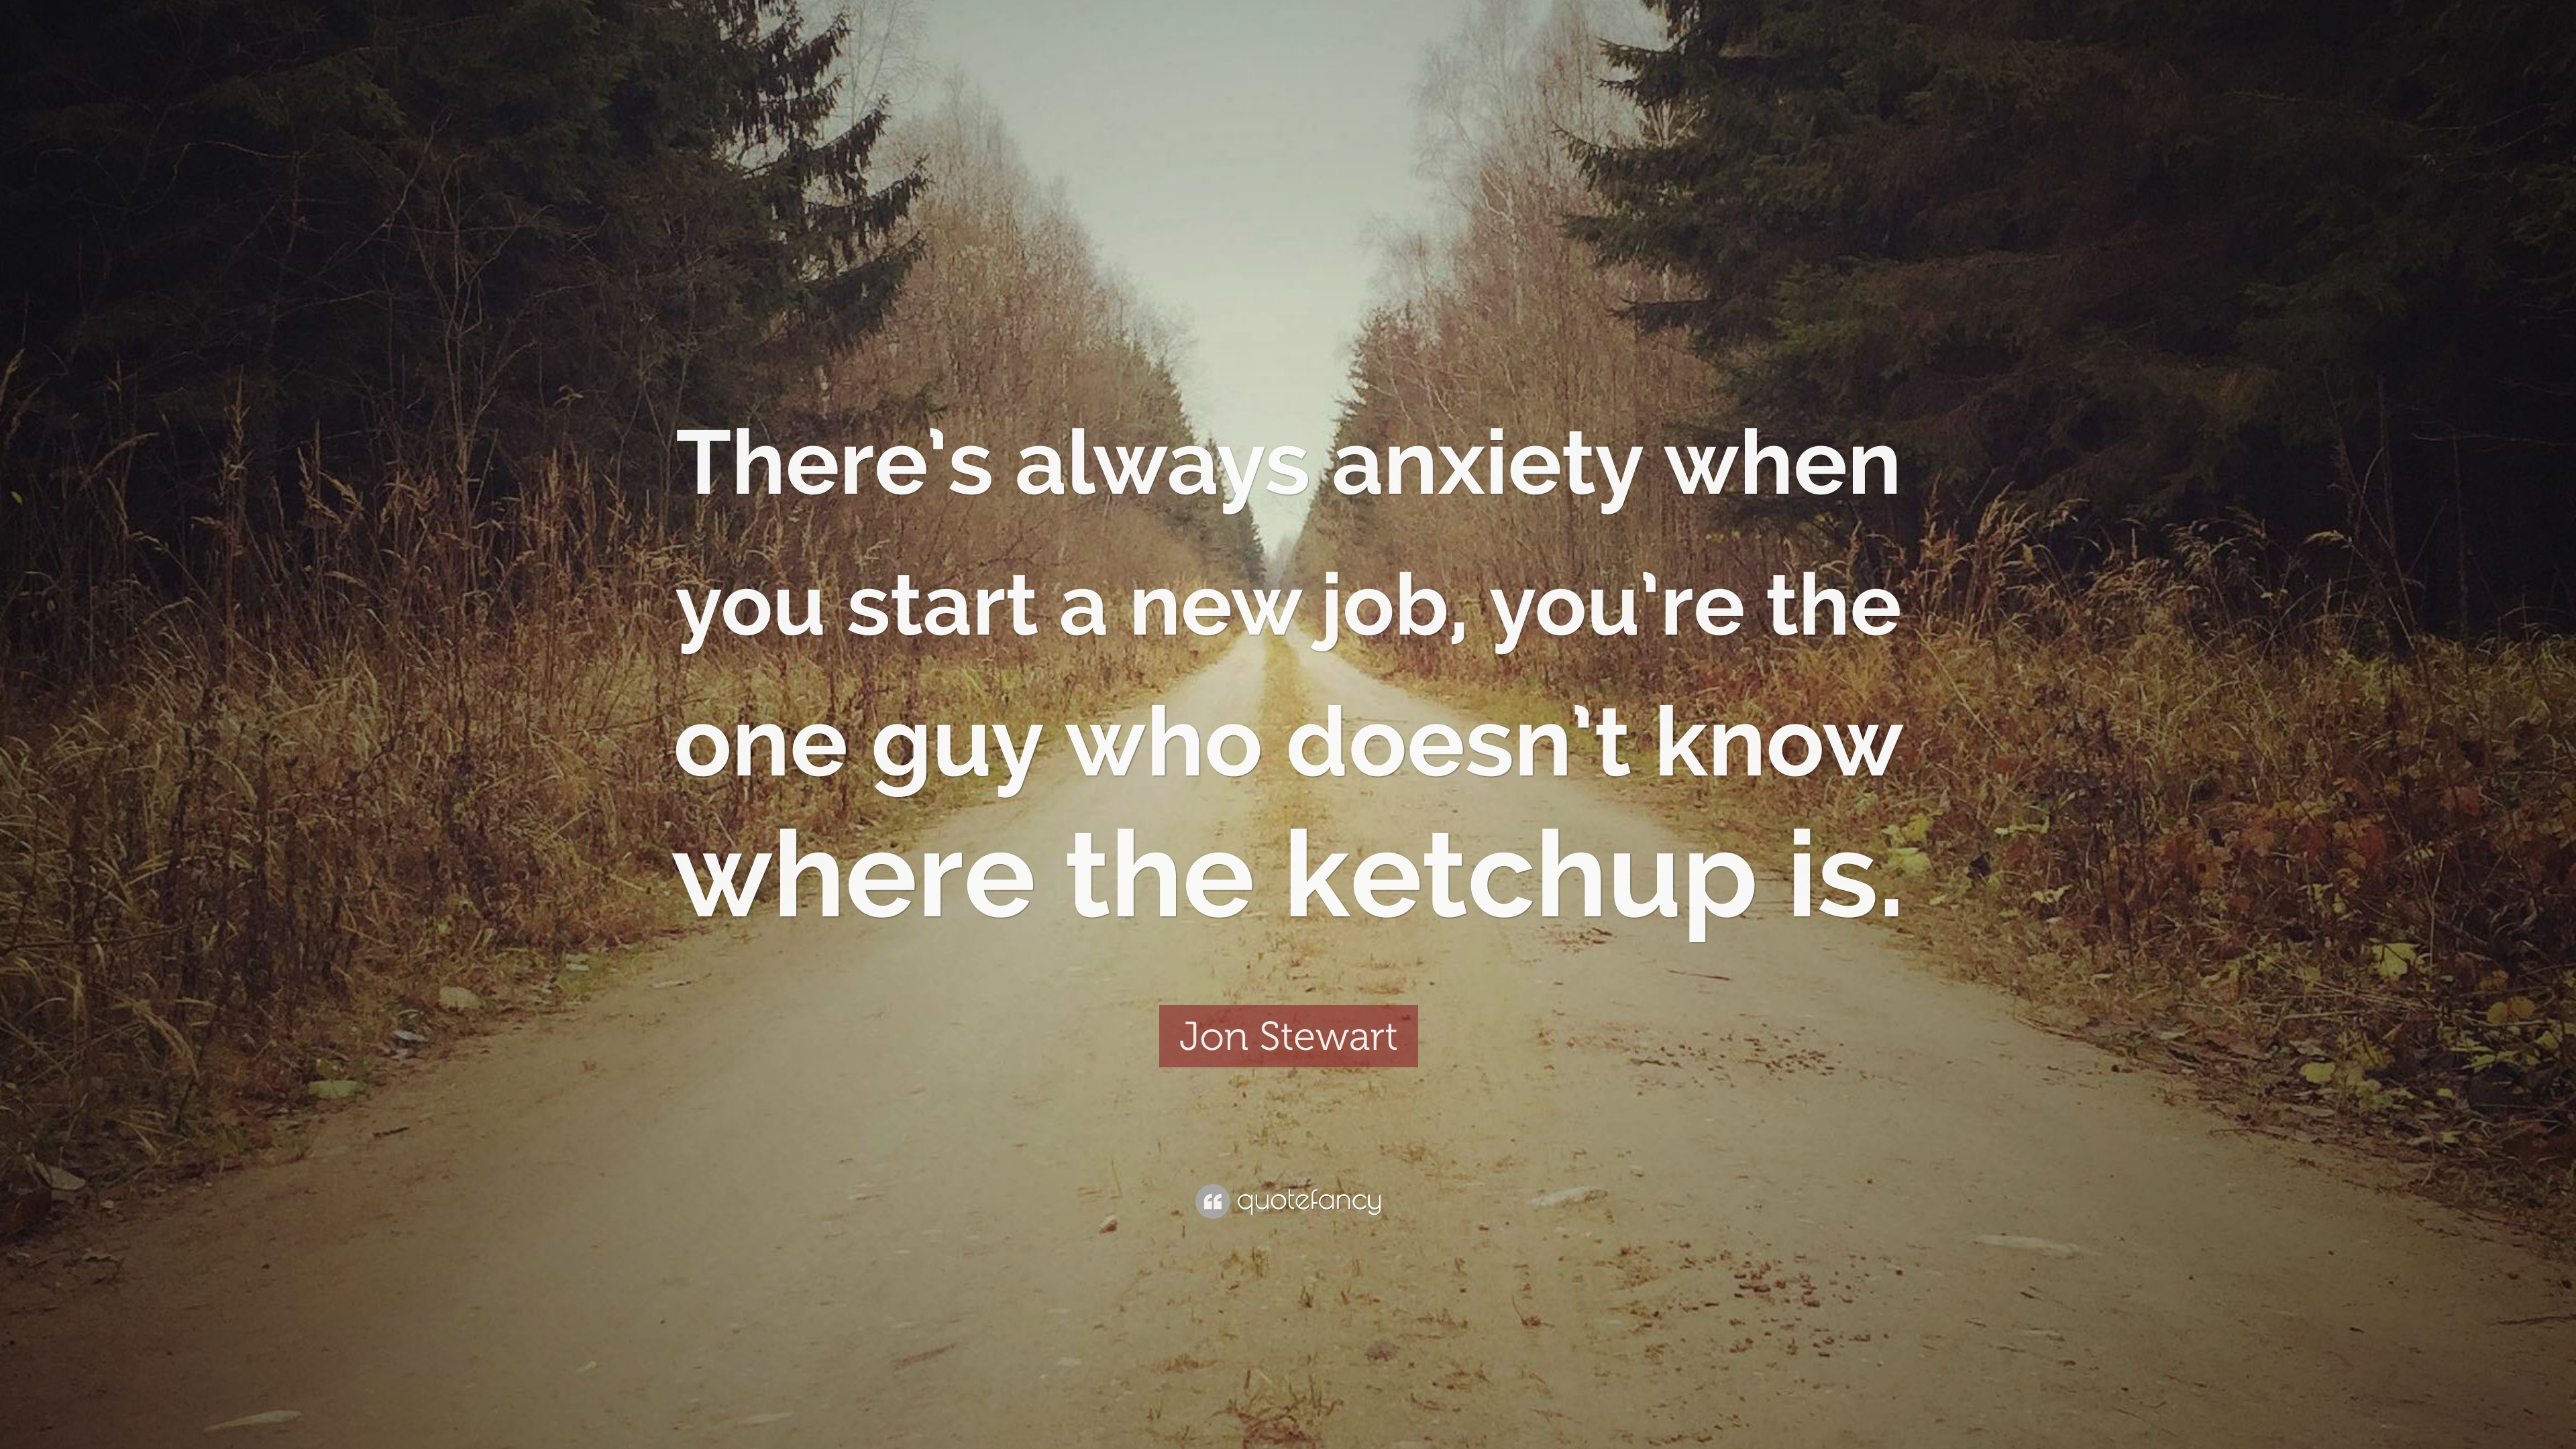 jon stewart quote there s always anxiety when you start a new jon stewart quote there s always anxiety when you start a new job you